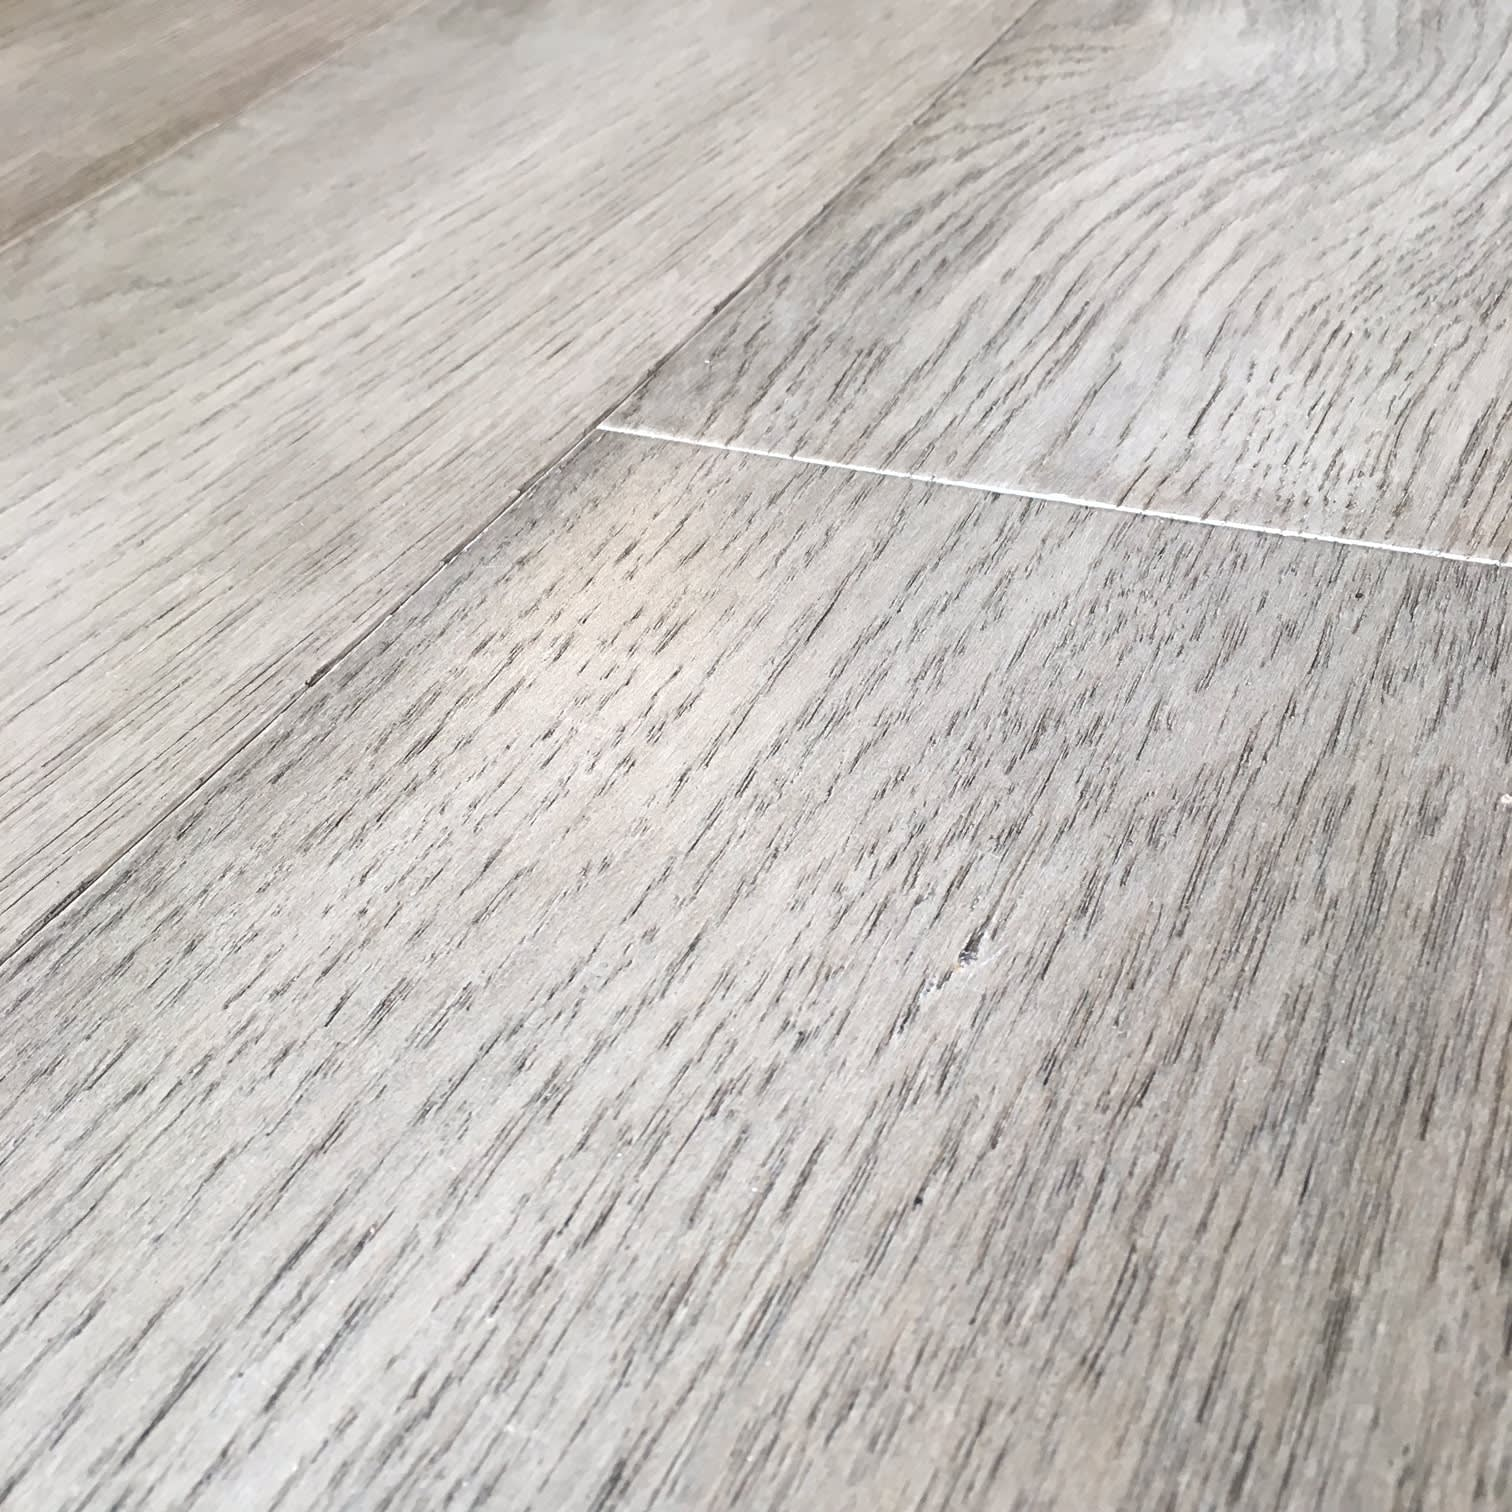 Detail of high quality wire-brushed finish on Chateau Malbec flooring used in eggersmann-designed condos in The Parklane Houston